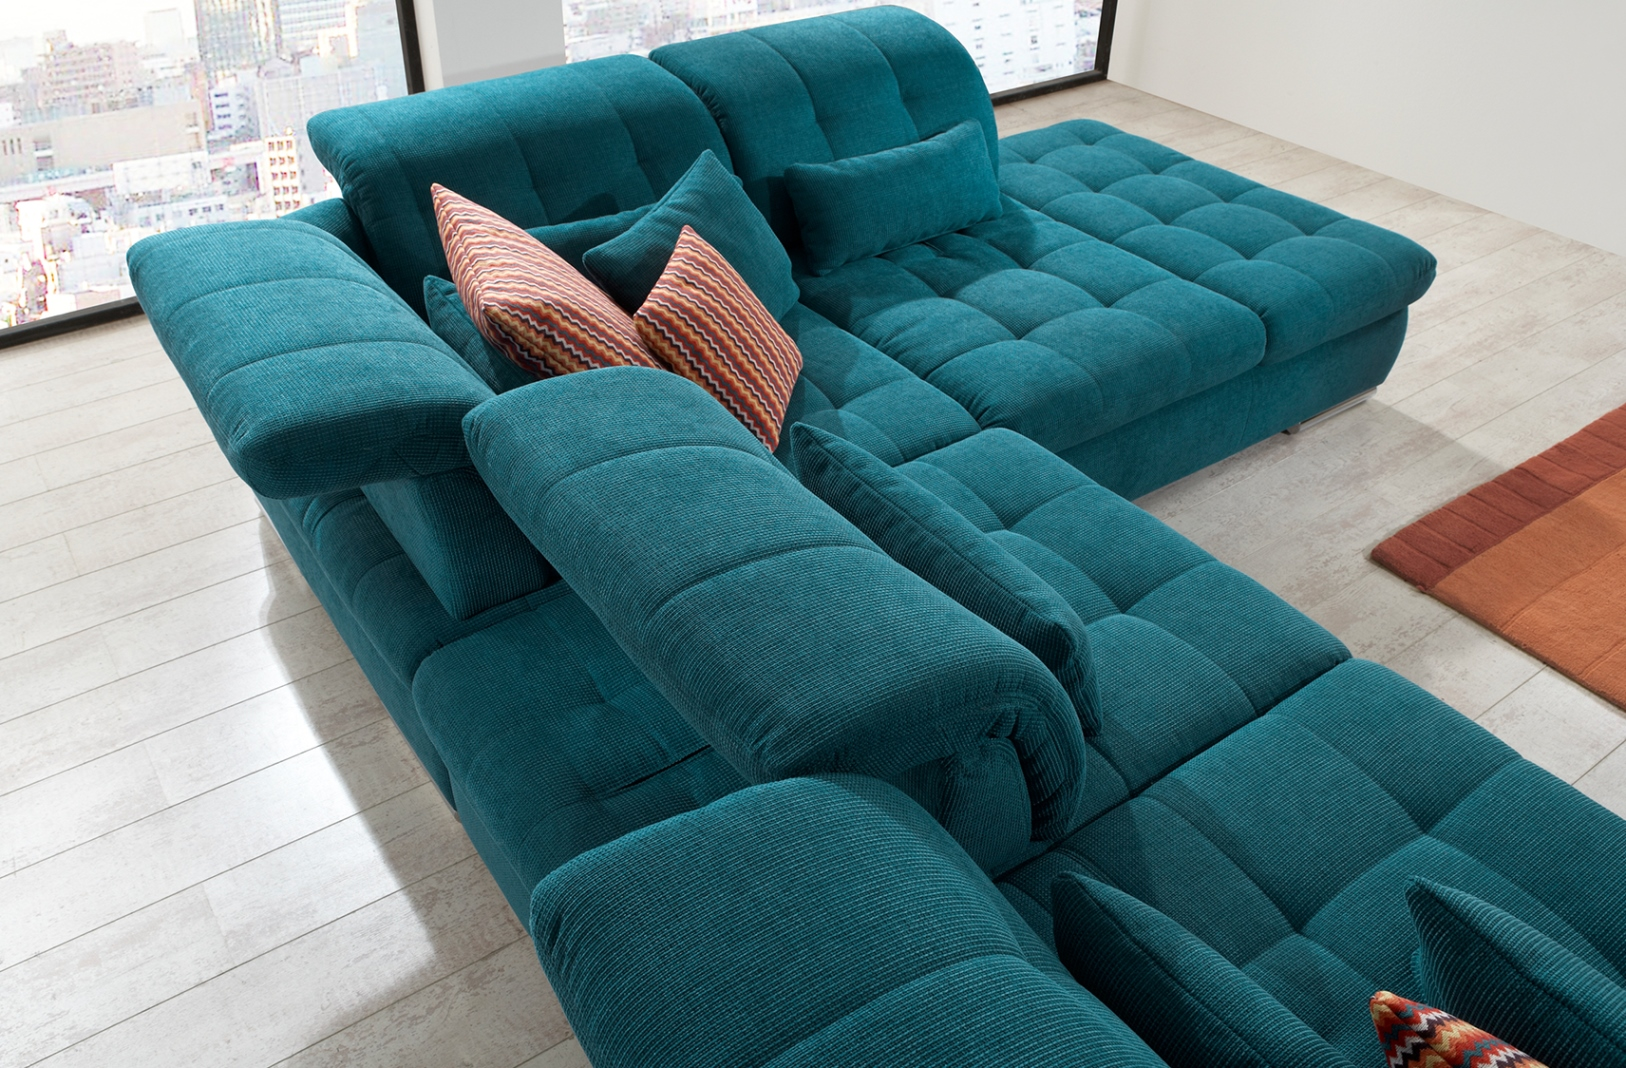 teal sectional sofa sectional sofa 3pc in teal fabric by. Black Bedroom Furniture Sets. Home Design Ideas